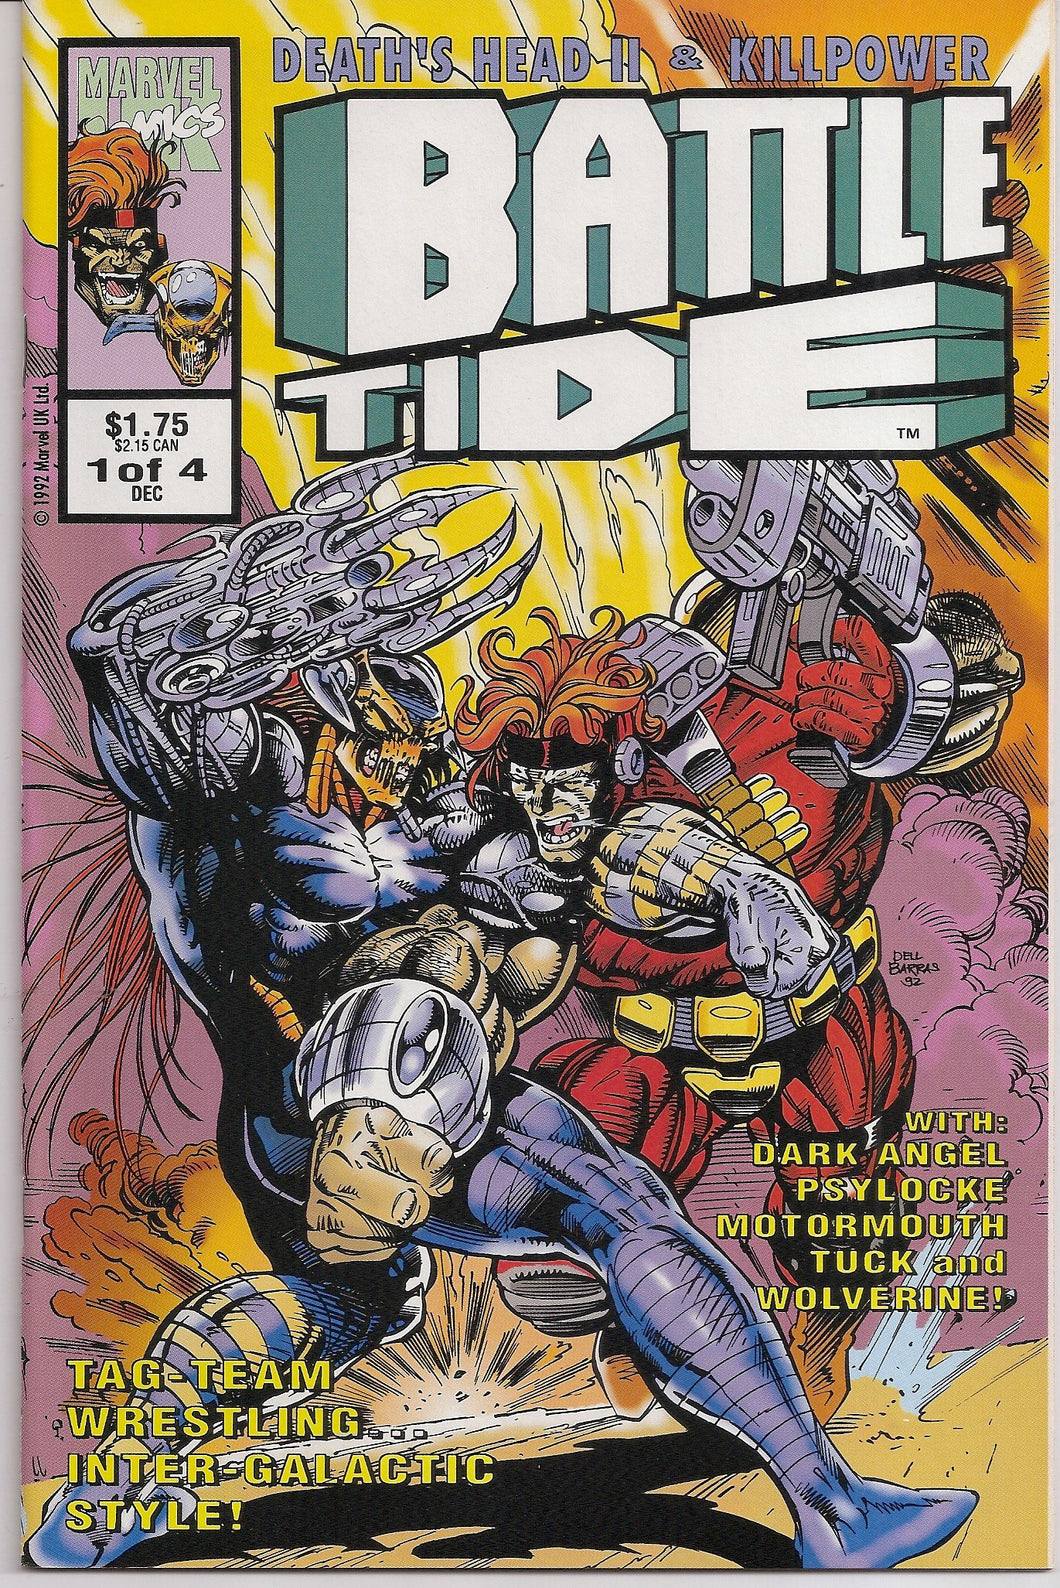 BATTLETIDE #1-4 (1992 Marvel UK) COMPLETE SET Death's Head II Killpower